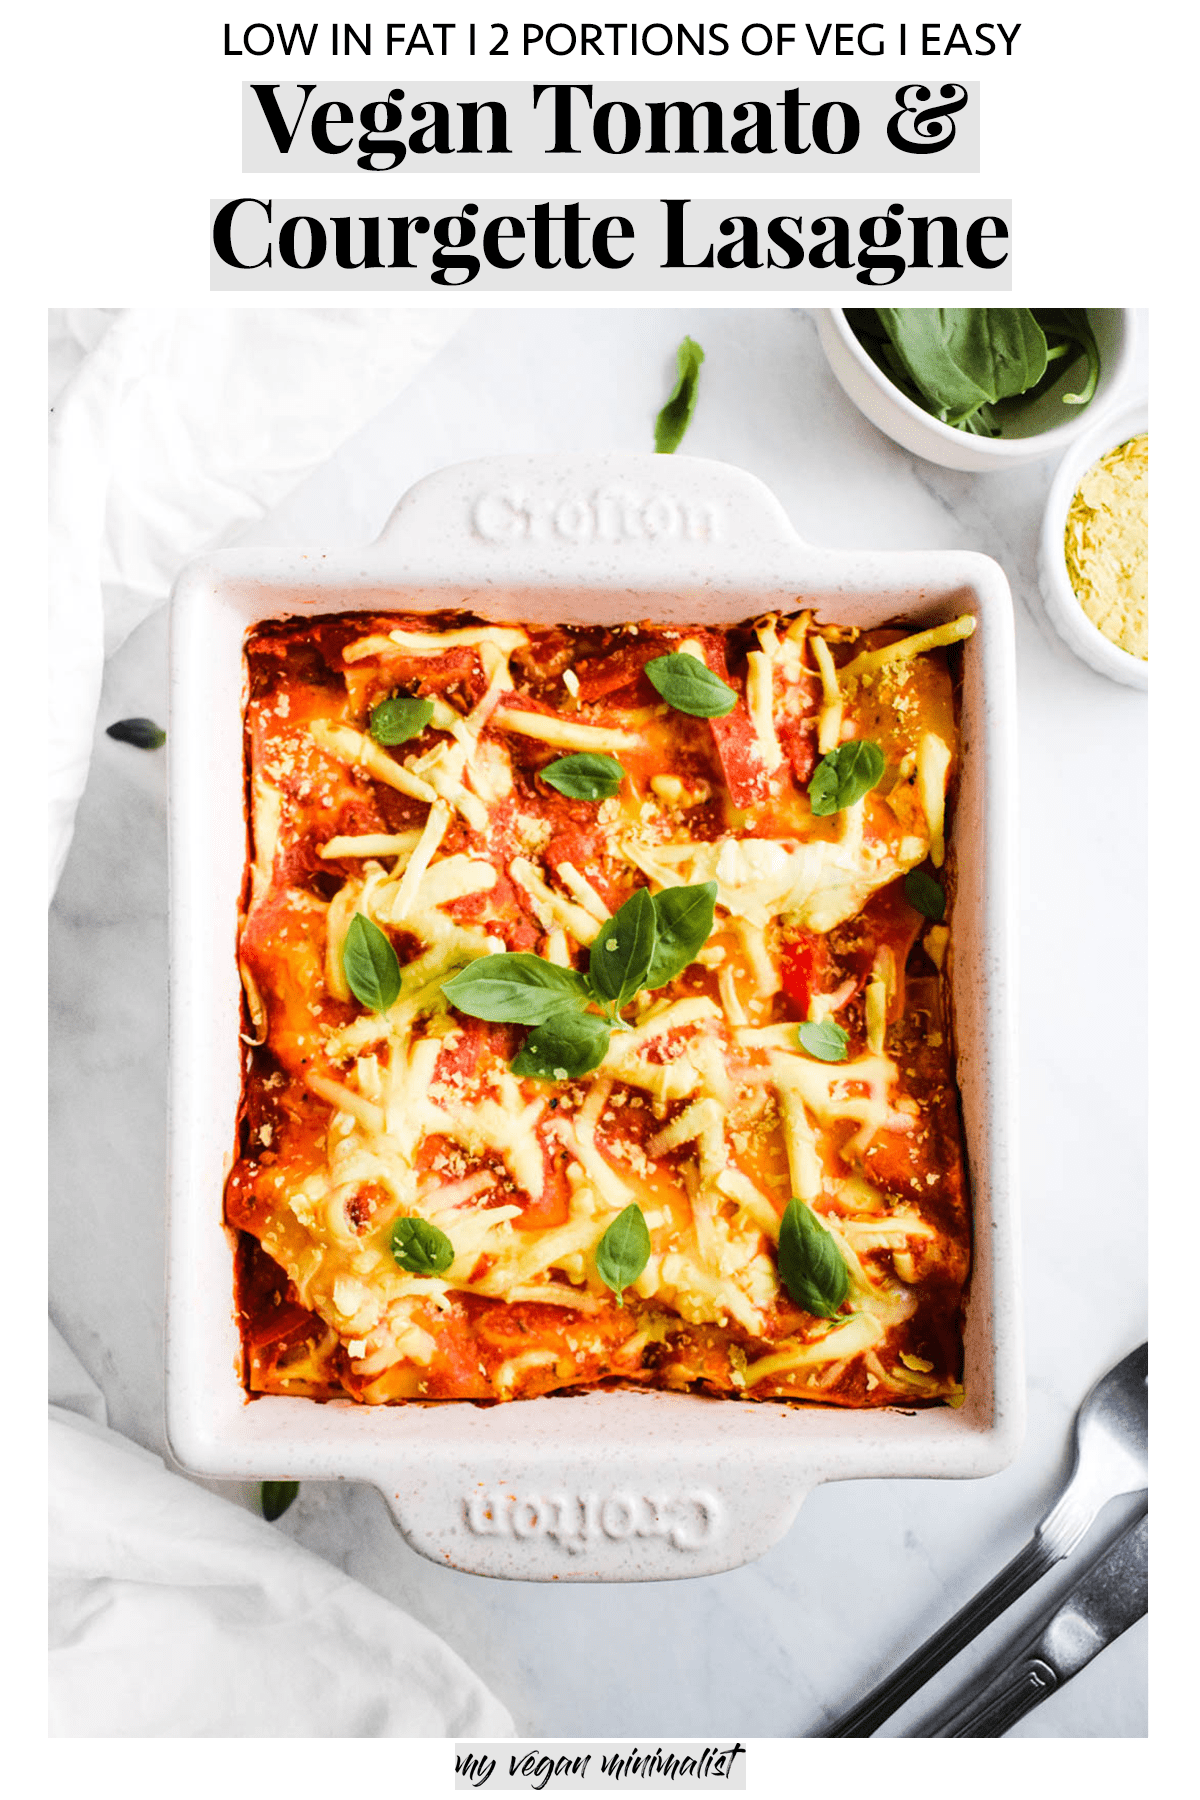 VEGAN-tomato-courgette-lasagne-healthy